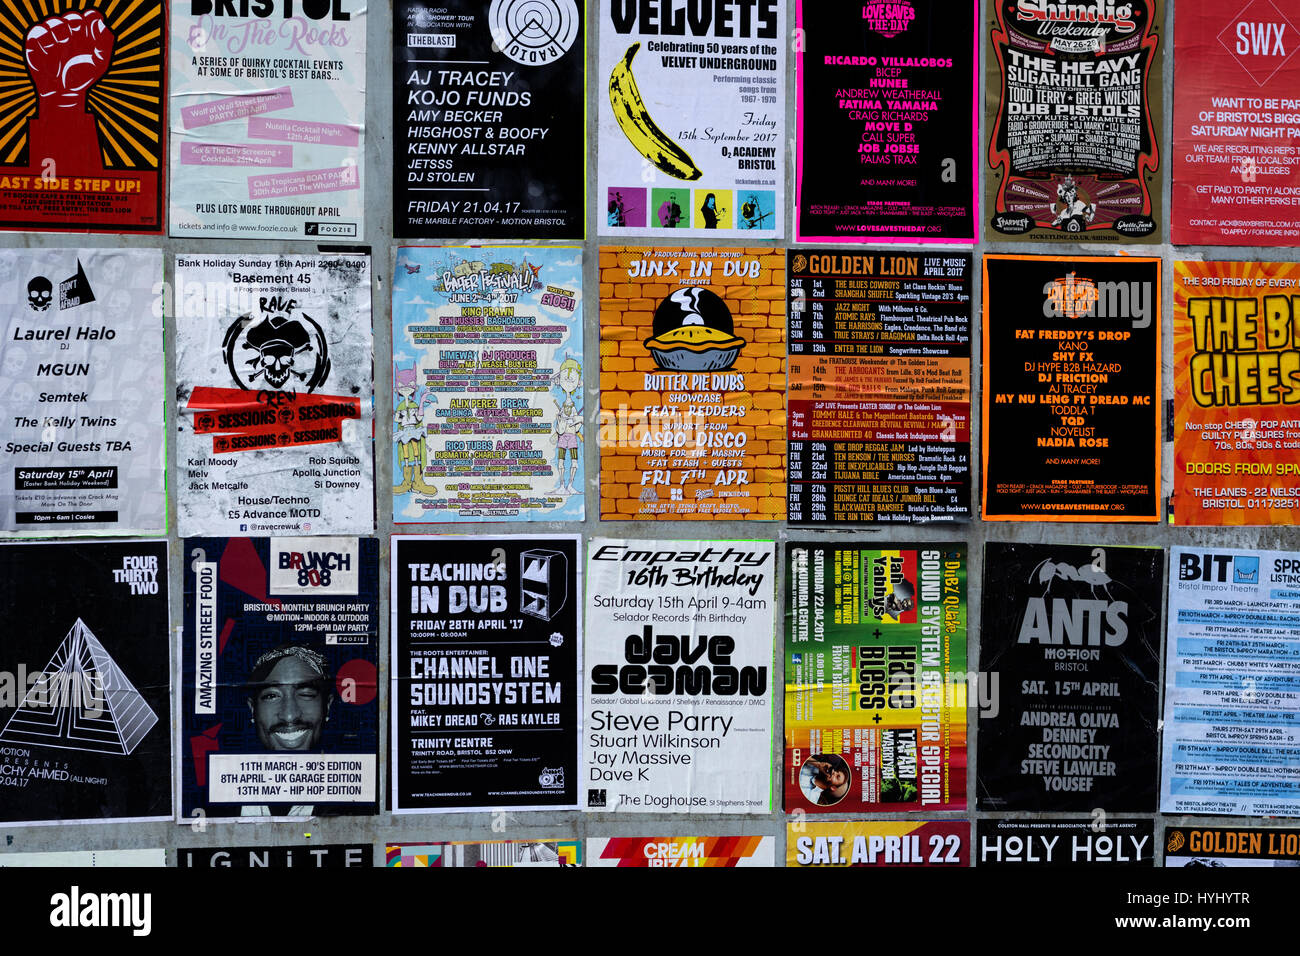 Gig advertising posters in Bristol city centre, UK - Stock Image